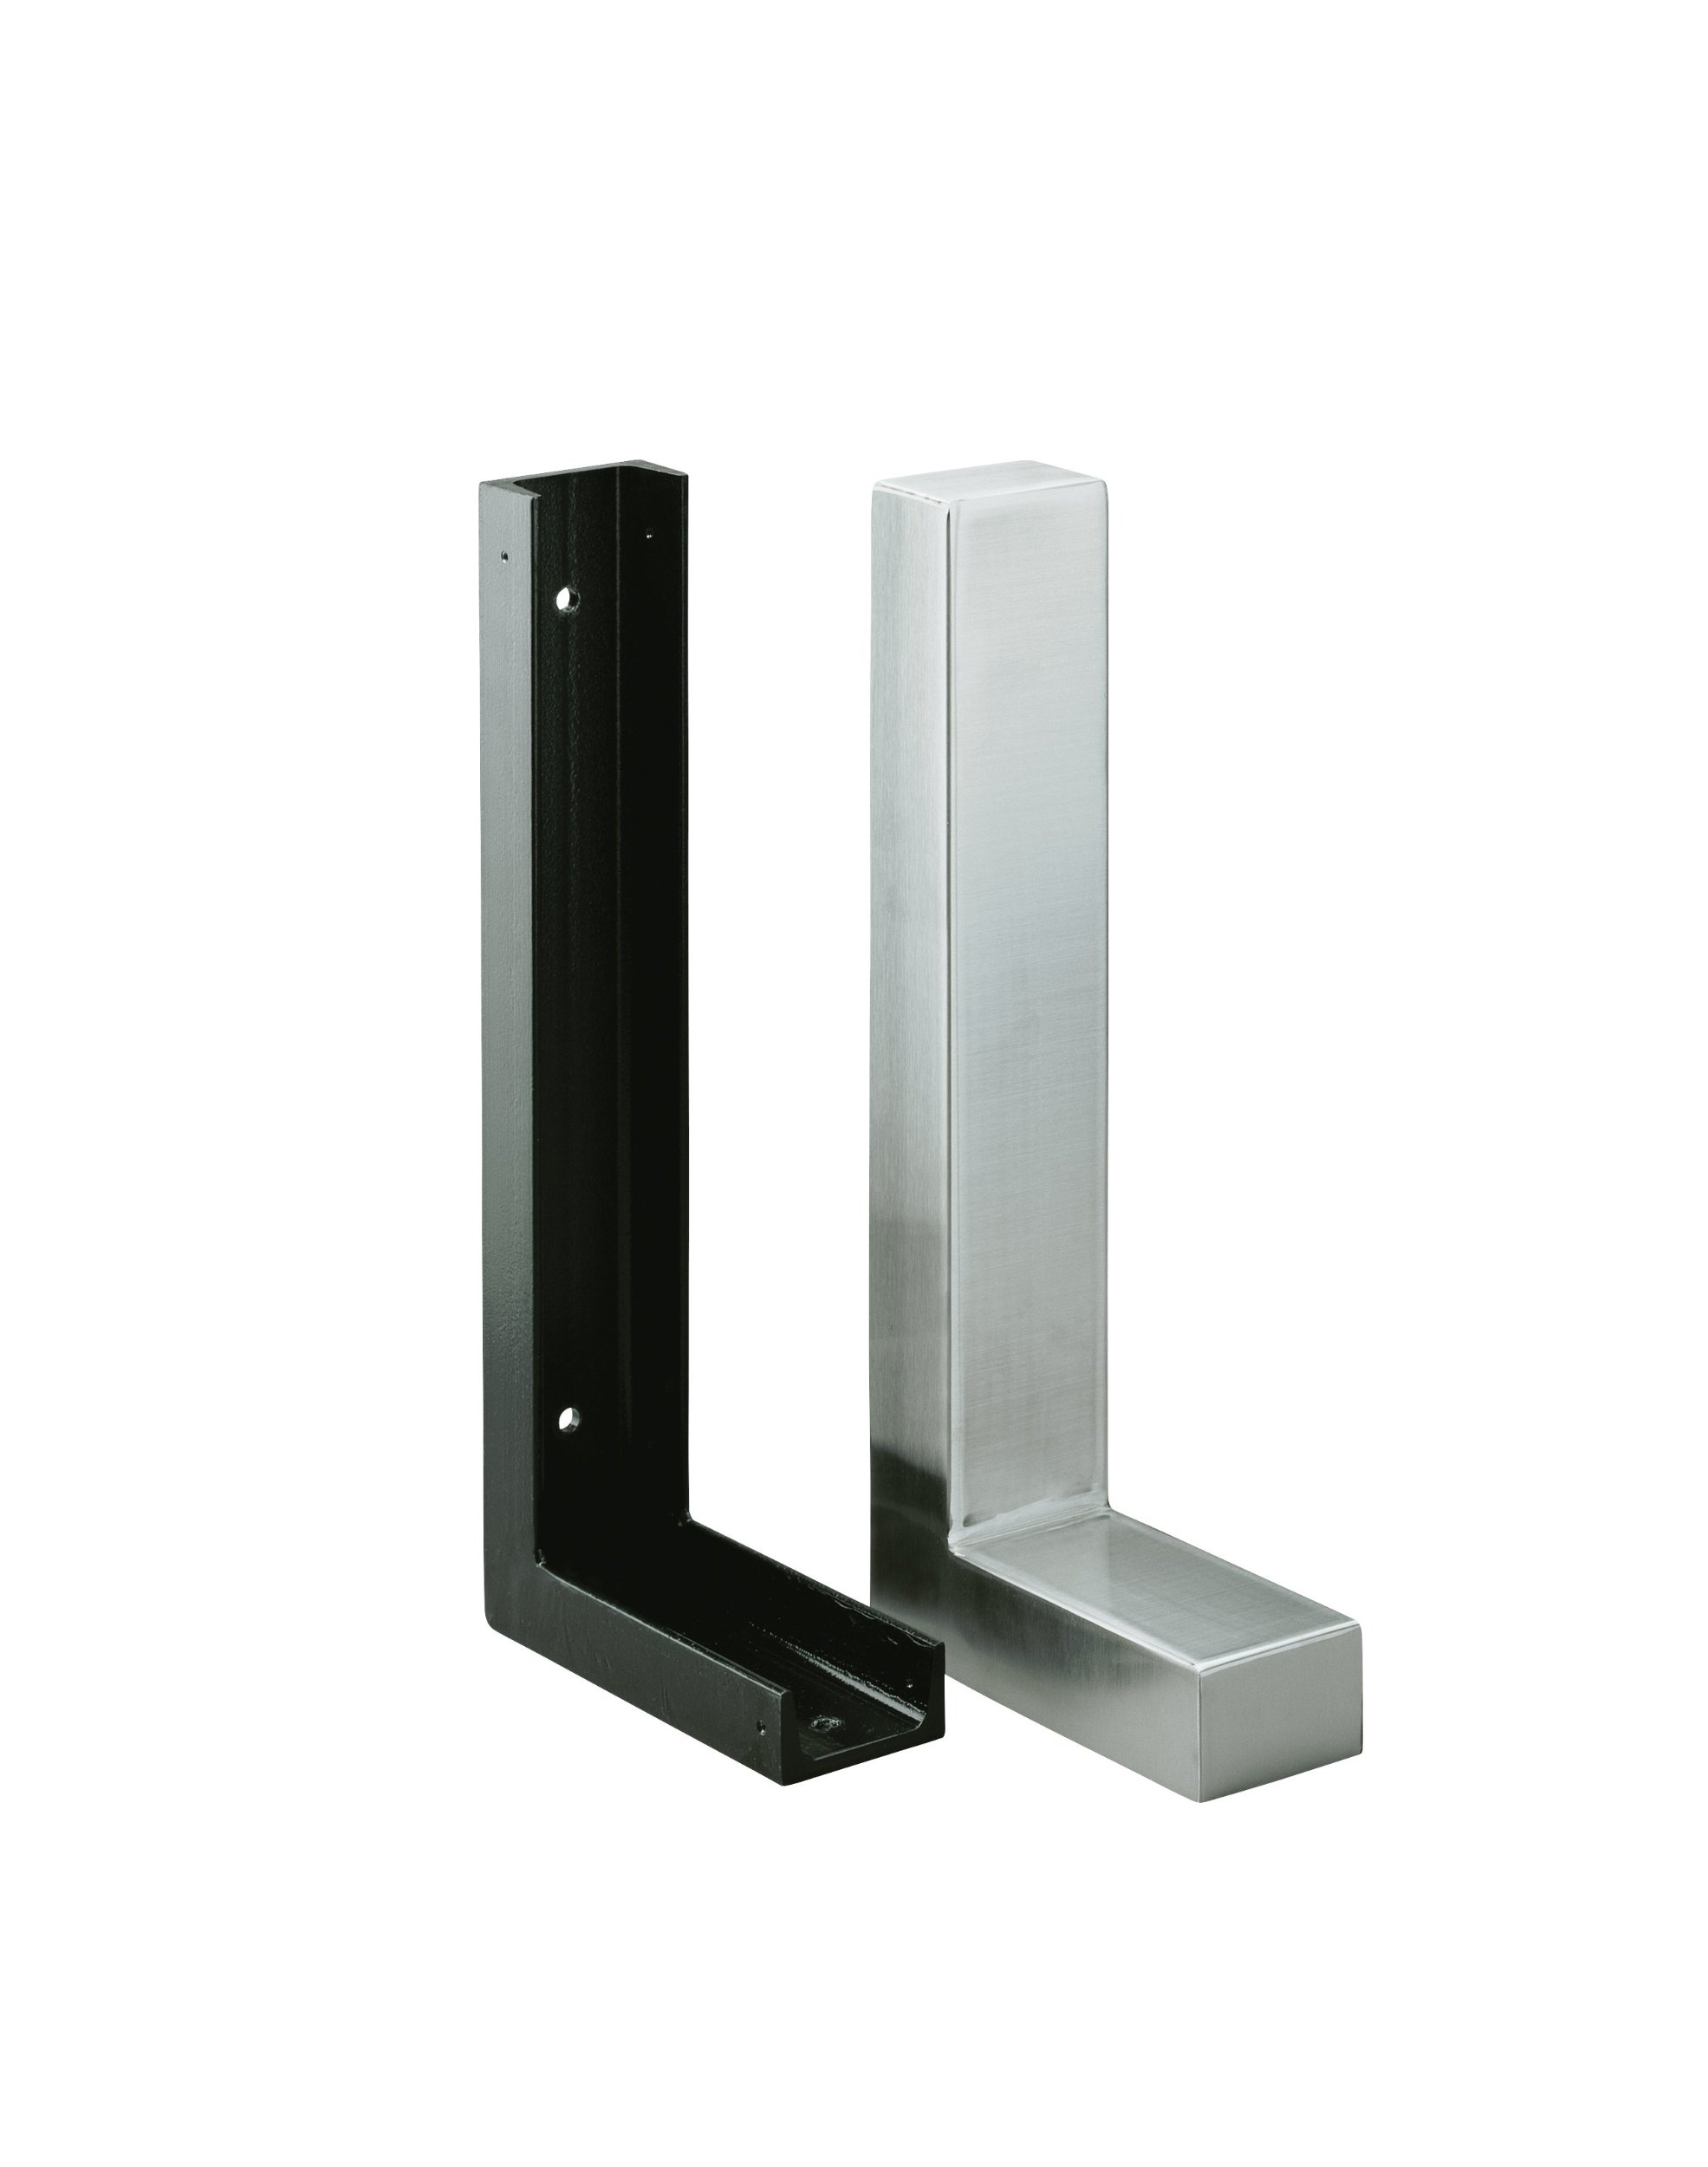 KOHLER K-9667-NA Purist Right-Facing Countertop Bracket by Kohler